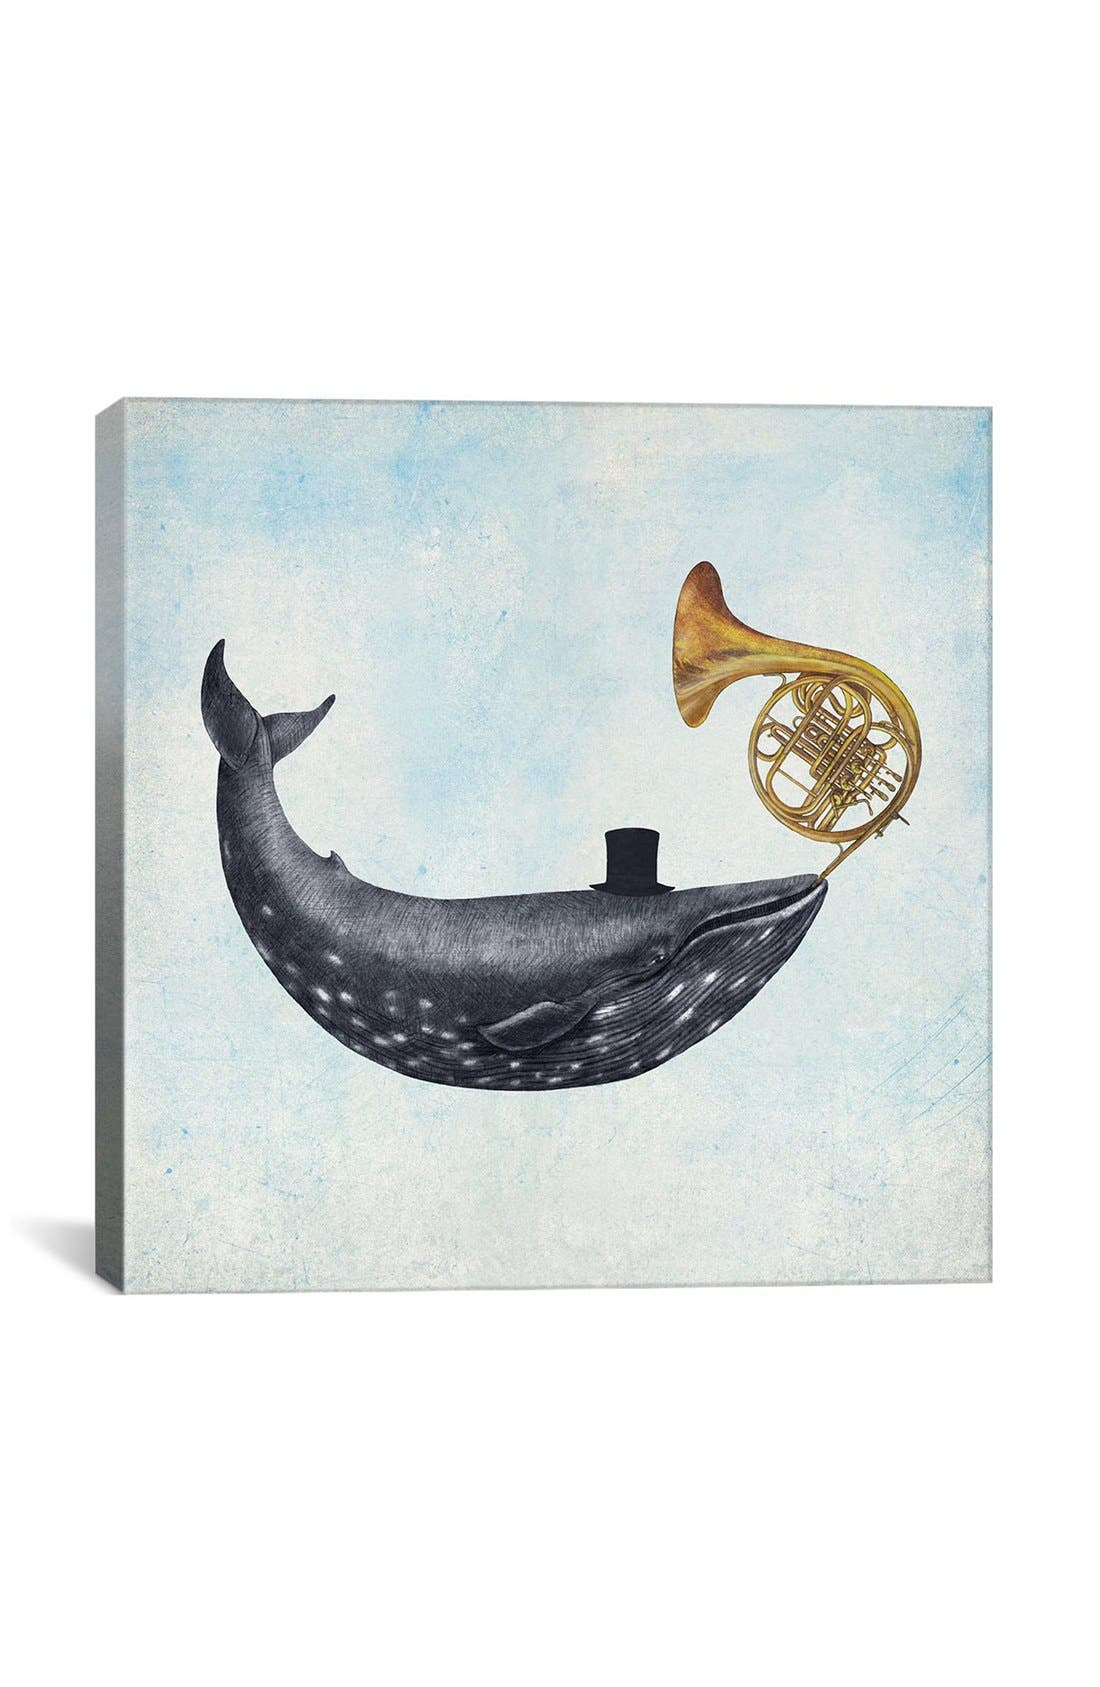 Alternate Image 1 Selected - iCanvas 'Whale Song Blue Square - Terry Fan' Giclée Print Canvas Art